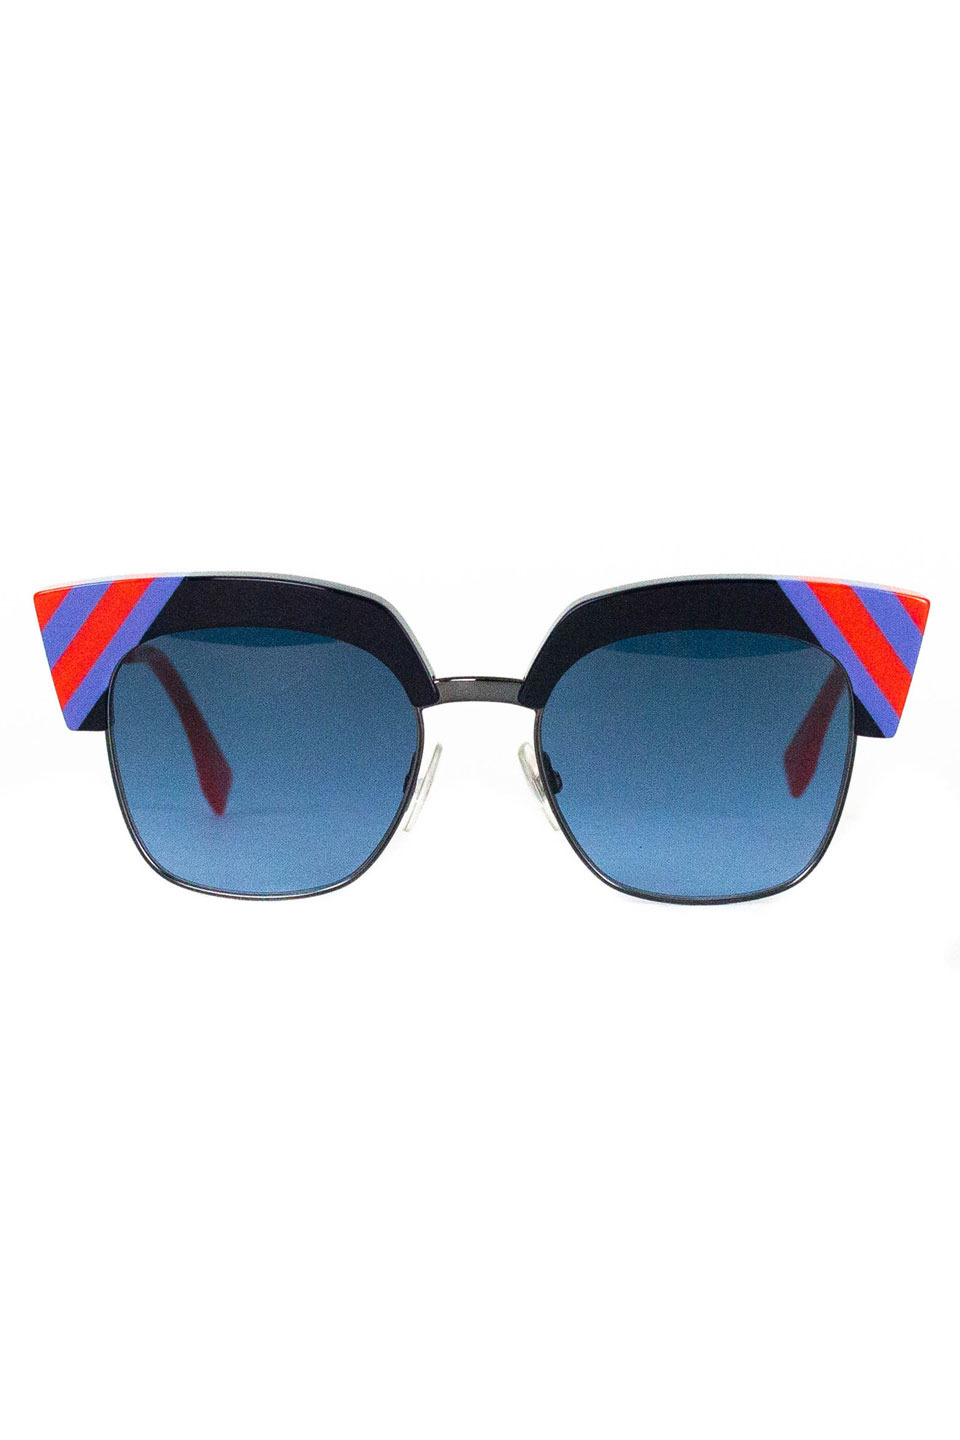 Renna Sunglasses in Blue and Red